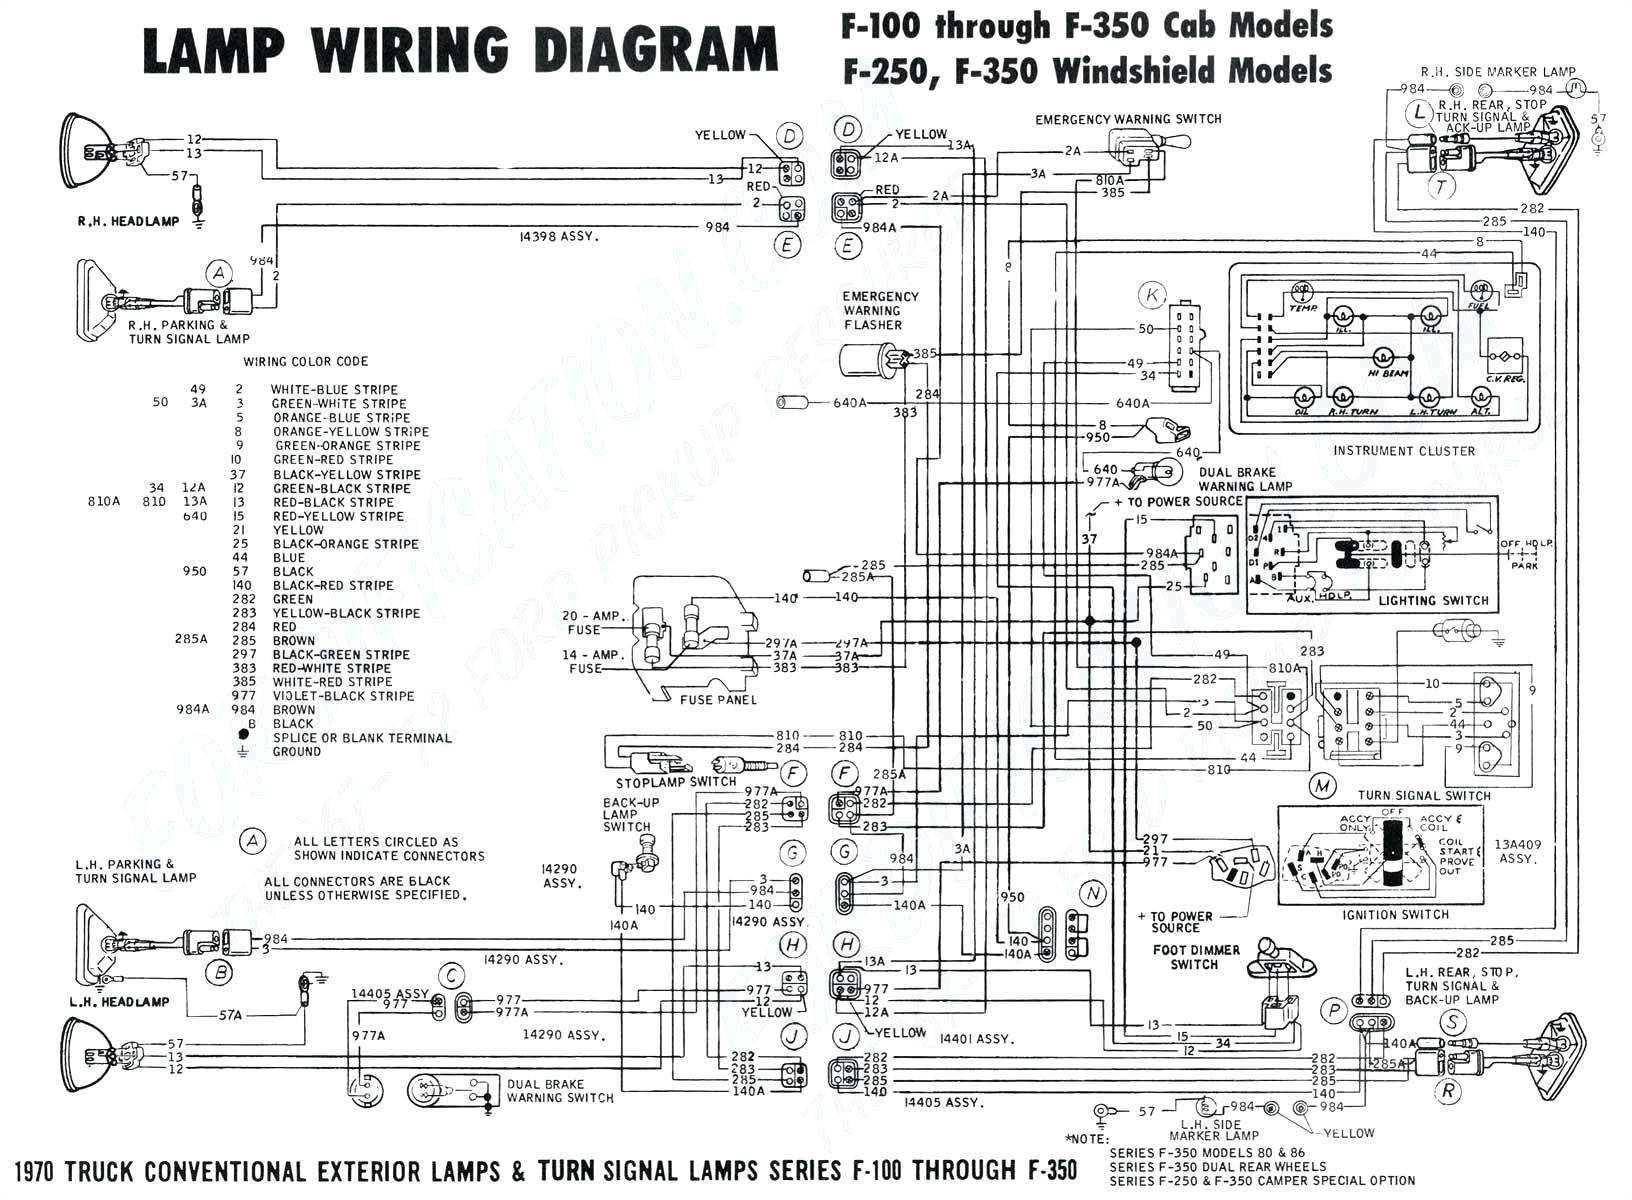 wiring diagram for pt s wiring diagram centre ignition wiring diagram for 2002 pt cruiser data